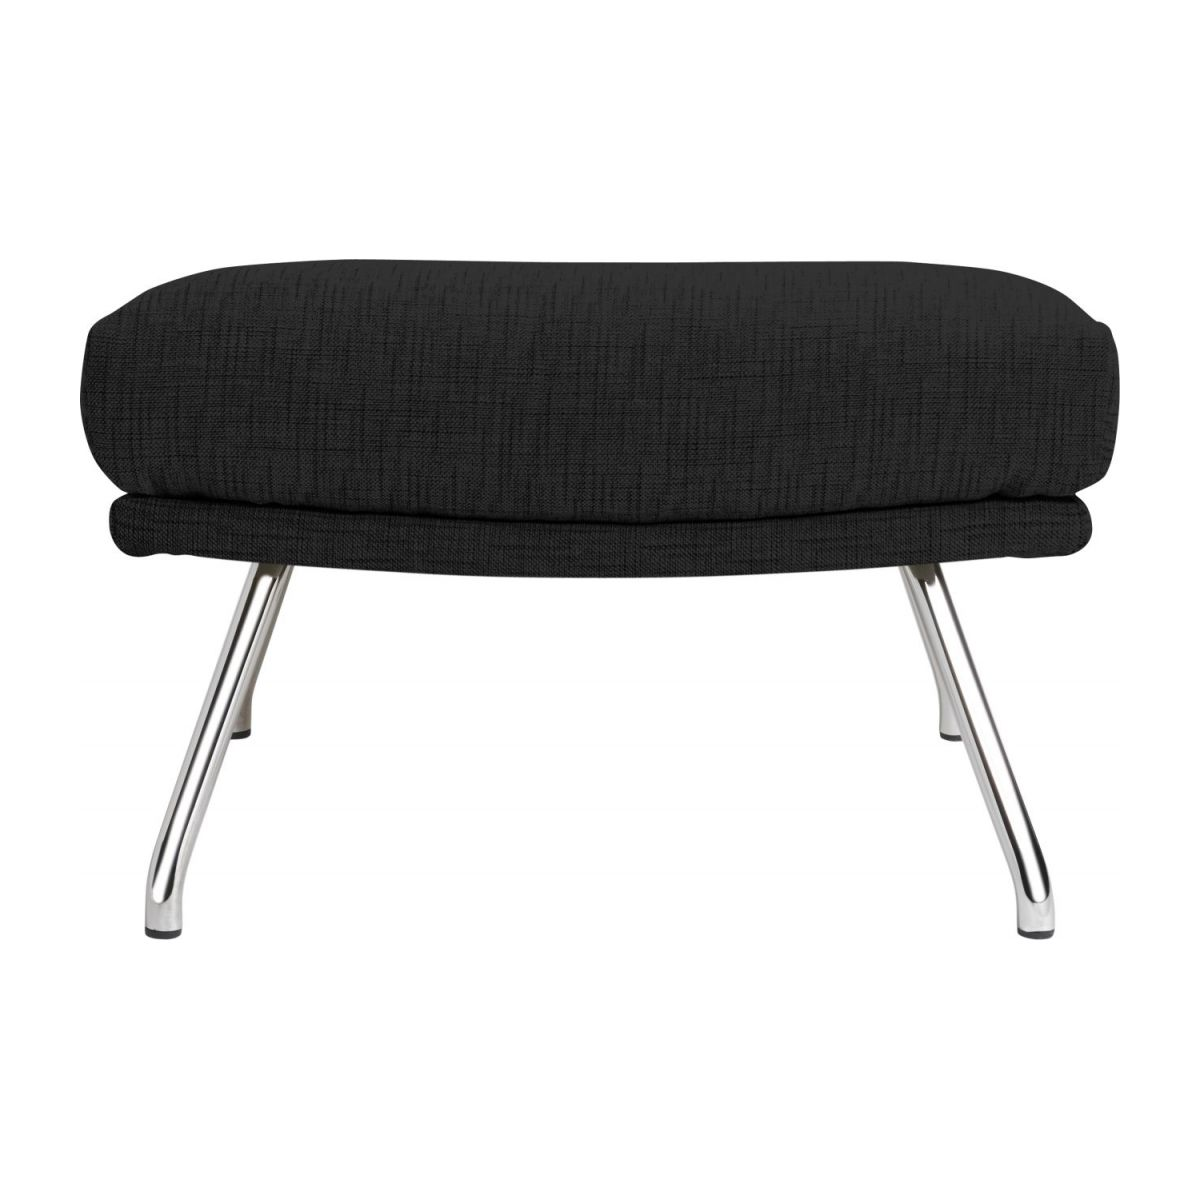 Footstool in Ancio fabric, nero with chromed metal legs n°3